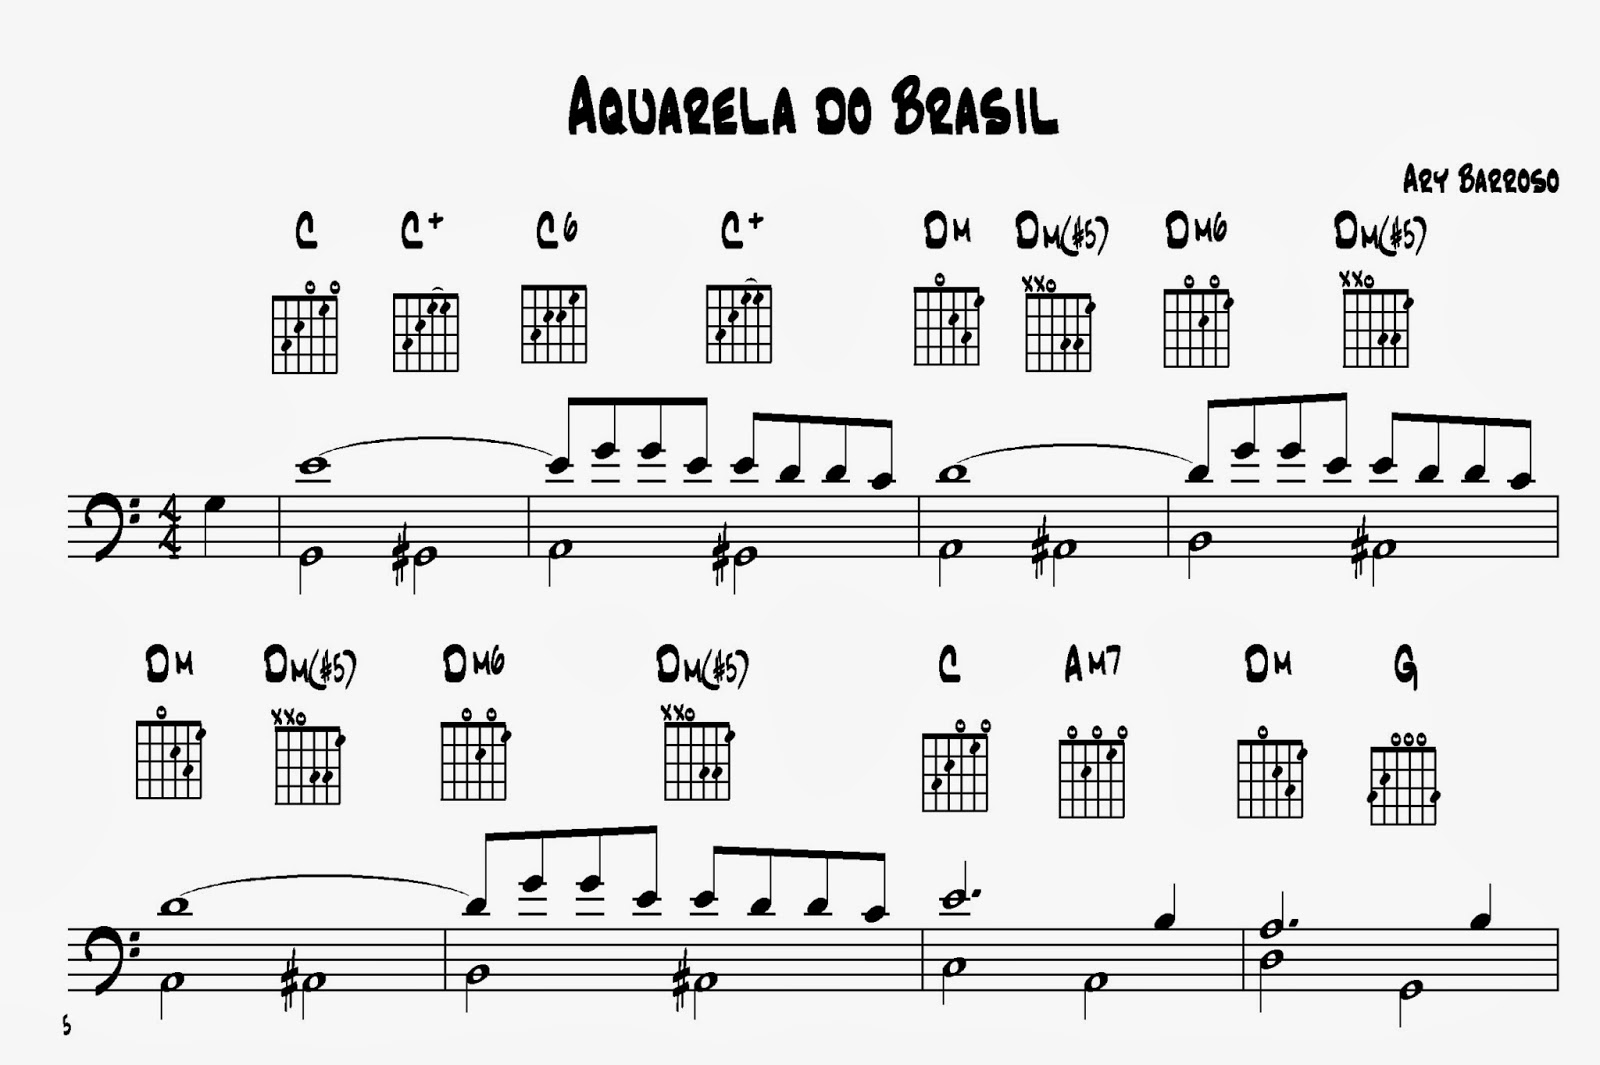 Four strings basslessons weekly basslines 126 line clichs part 2 a very famous example for the type d line clich is the samba tune aquarela do brasil by ary barroso written in 1939 hexwebz Gallery